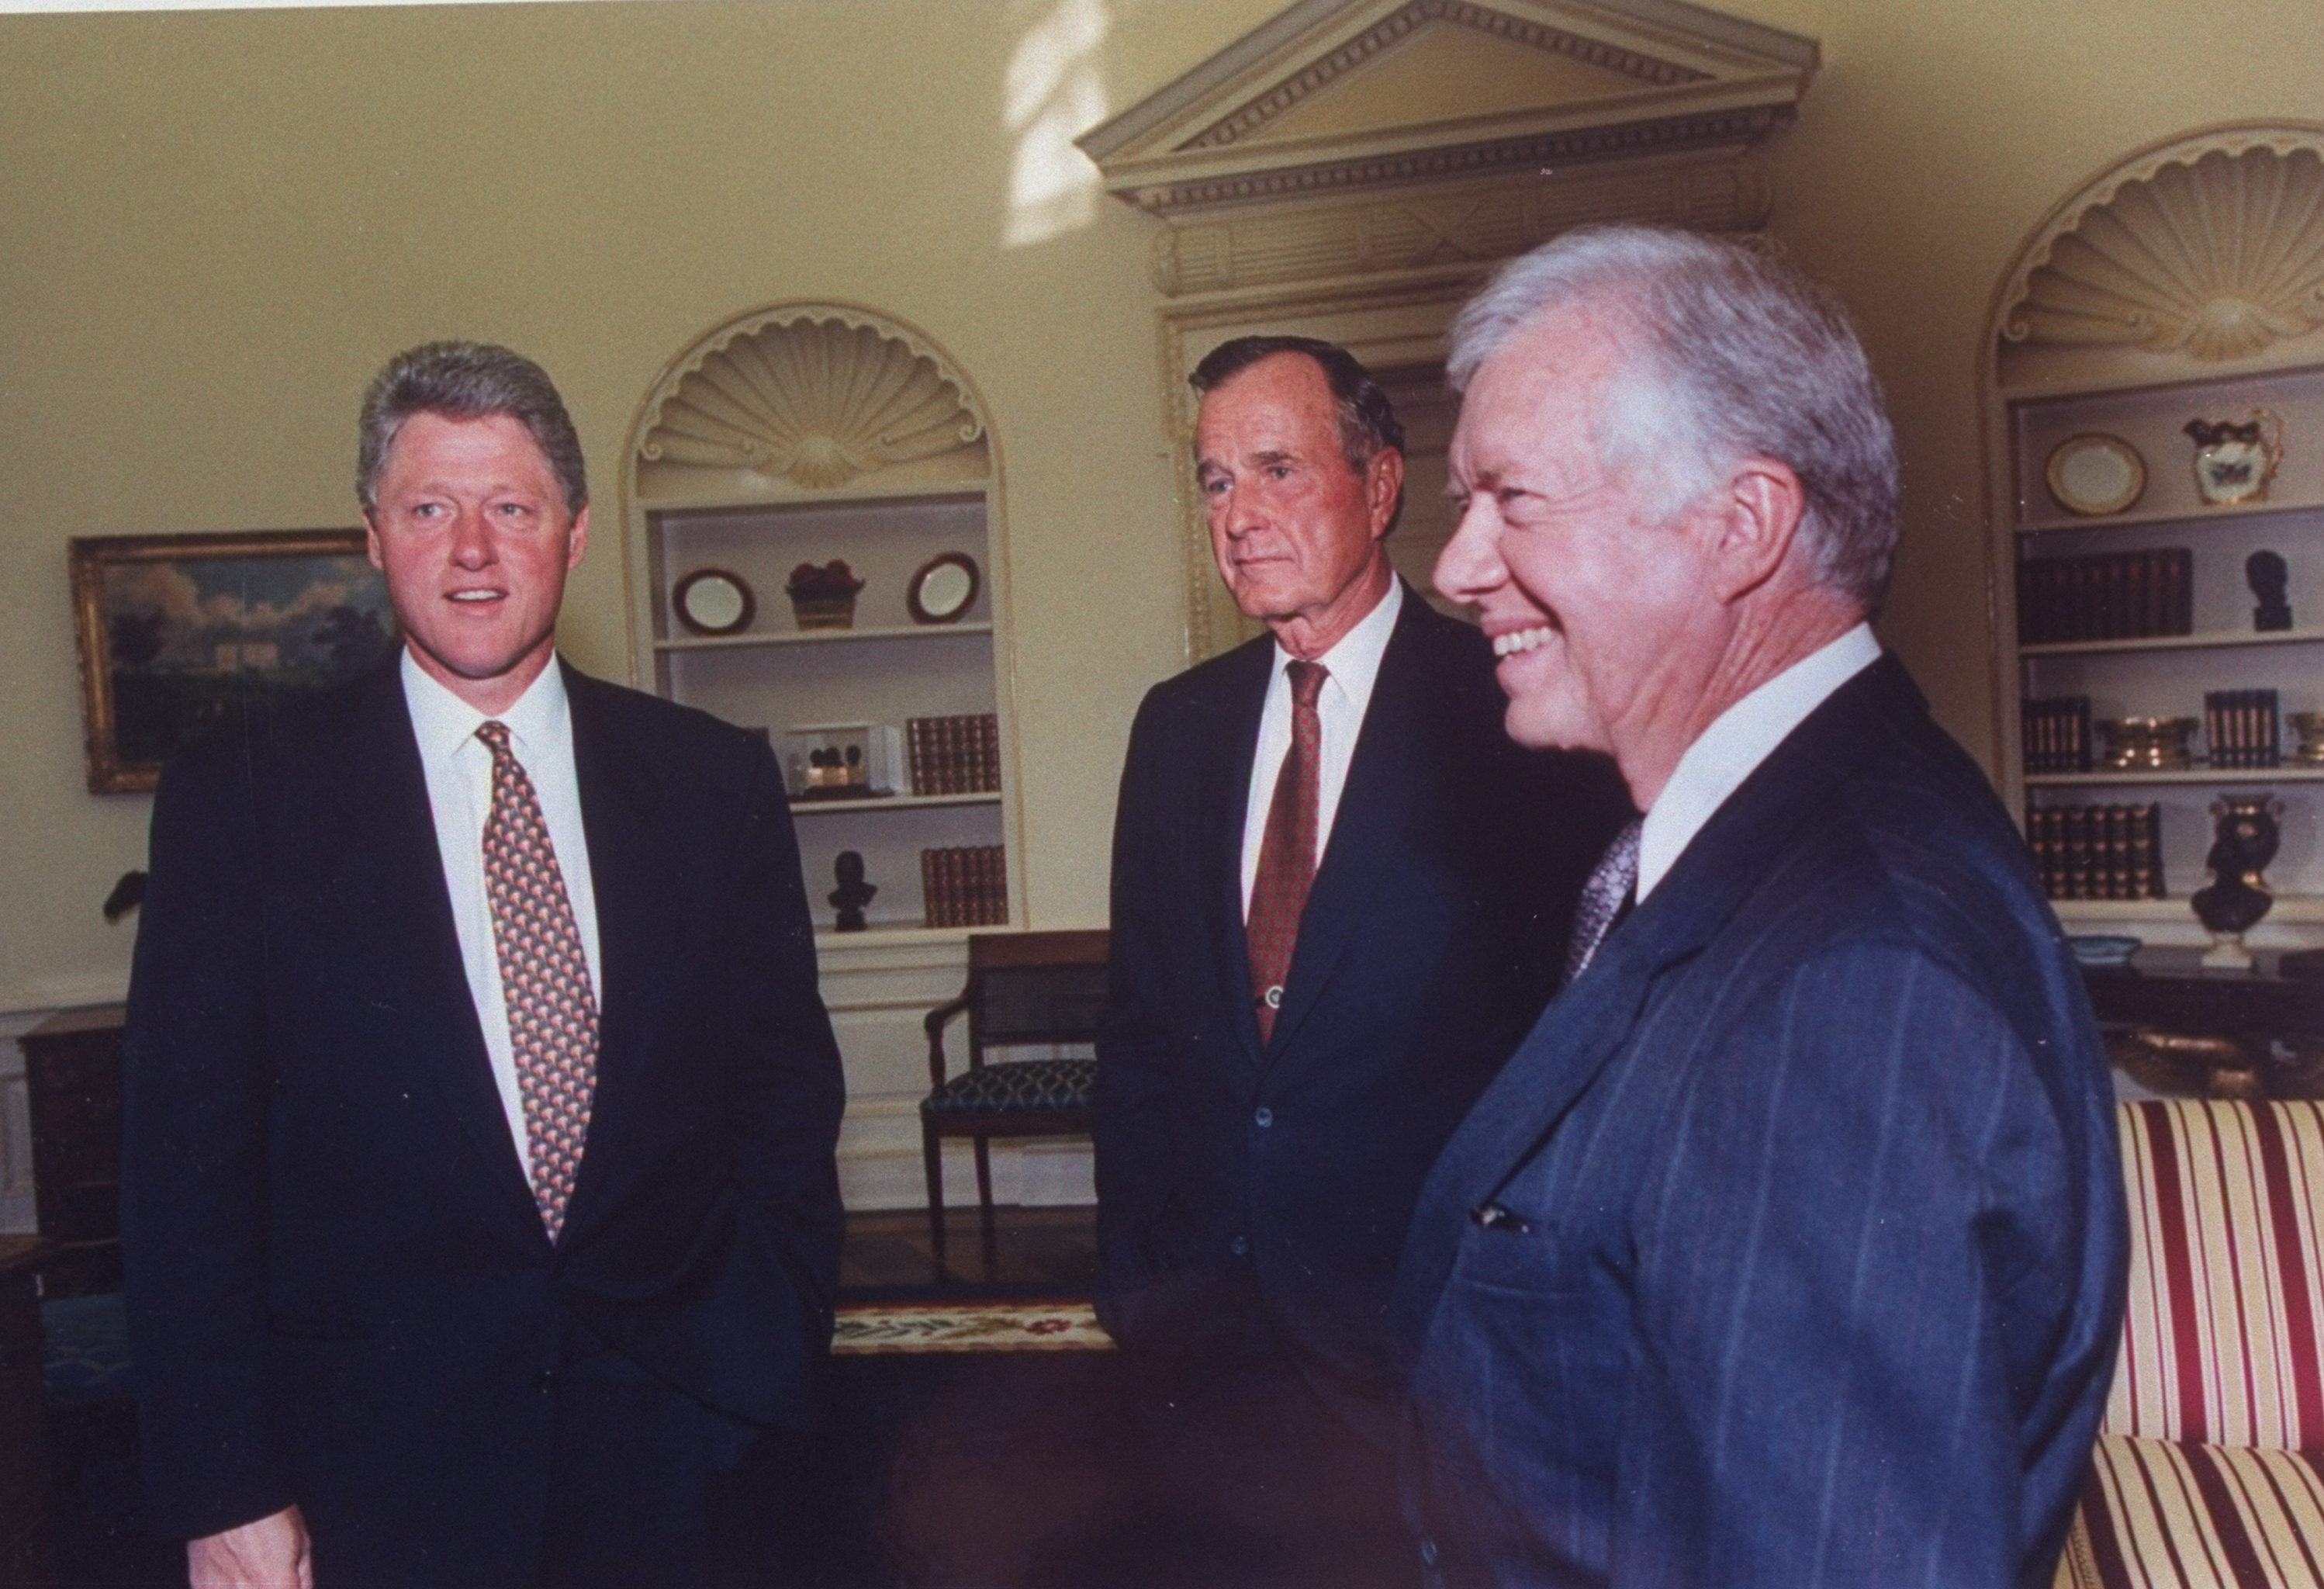 Pres. Bill Clinton (L) w. former Presidents Jimmy Carter (R) & George Bush in Oval Office, 2 being among invitees to the White House Israel/PLO peace accord signing ceremony.